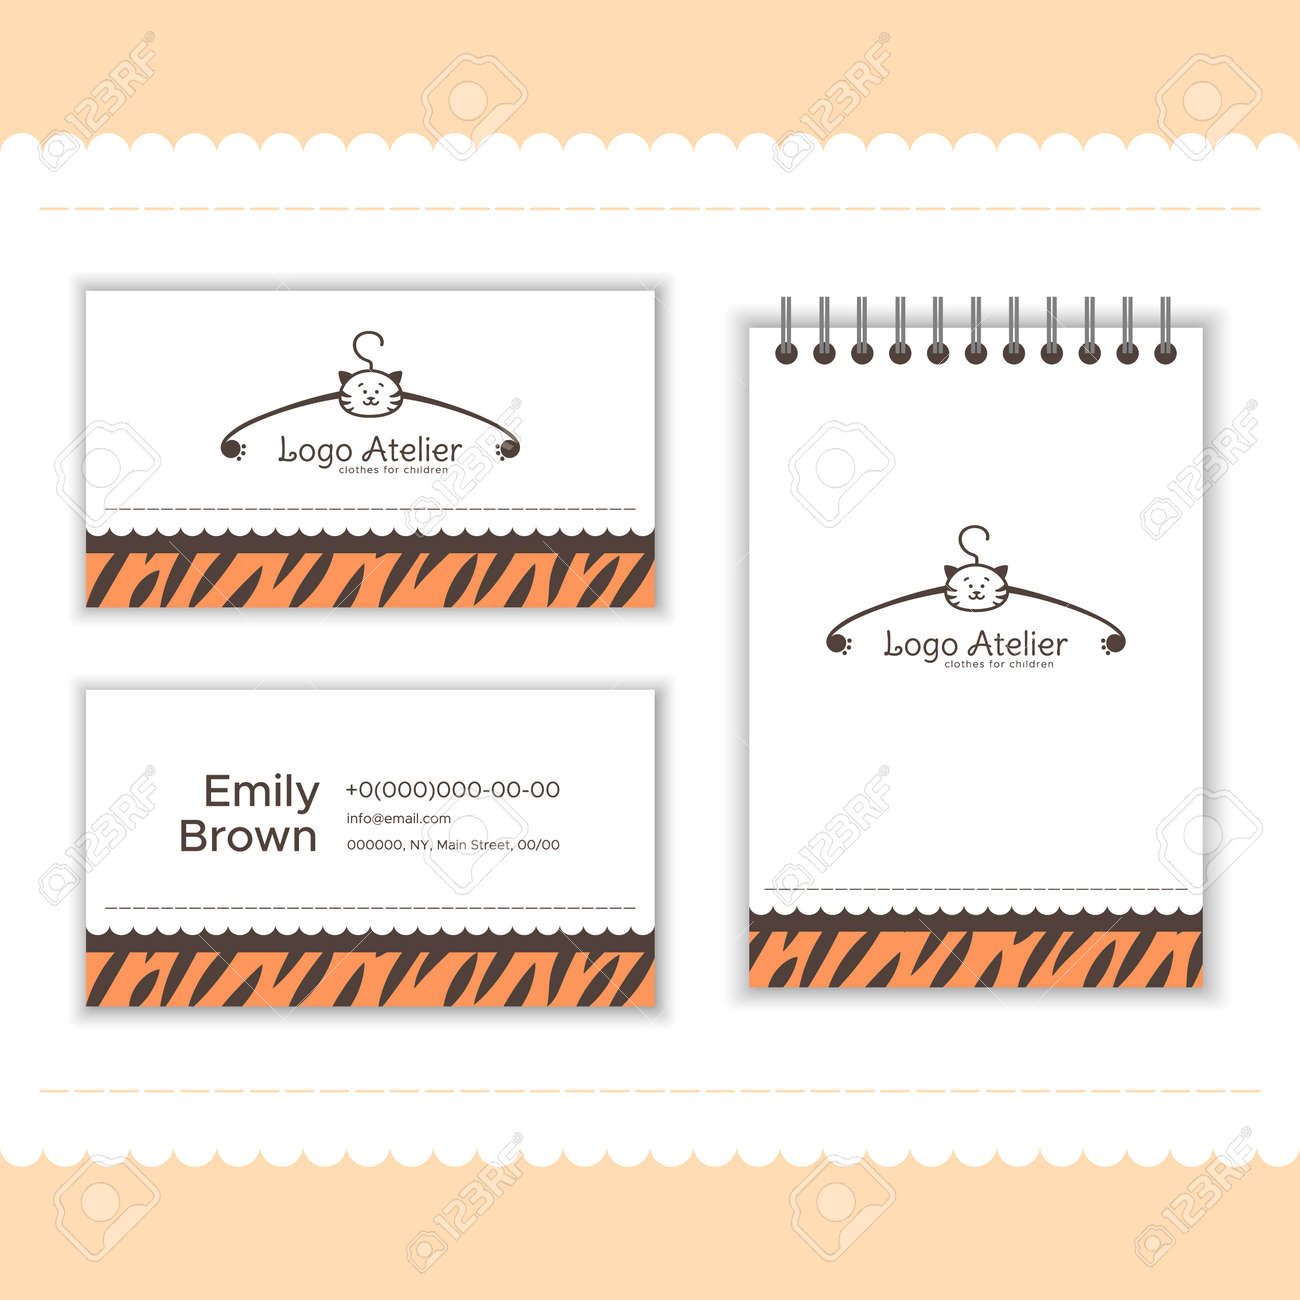 Branding For The Childrens Clothing Store Logo Business Card